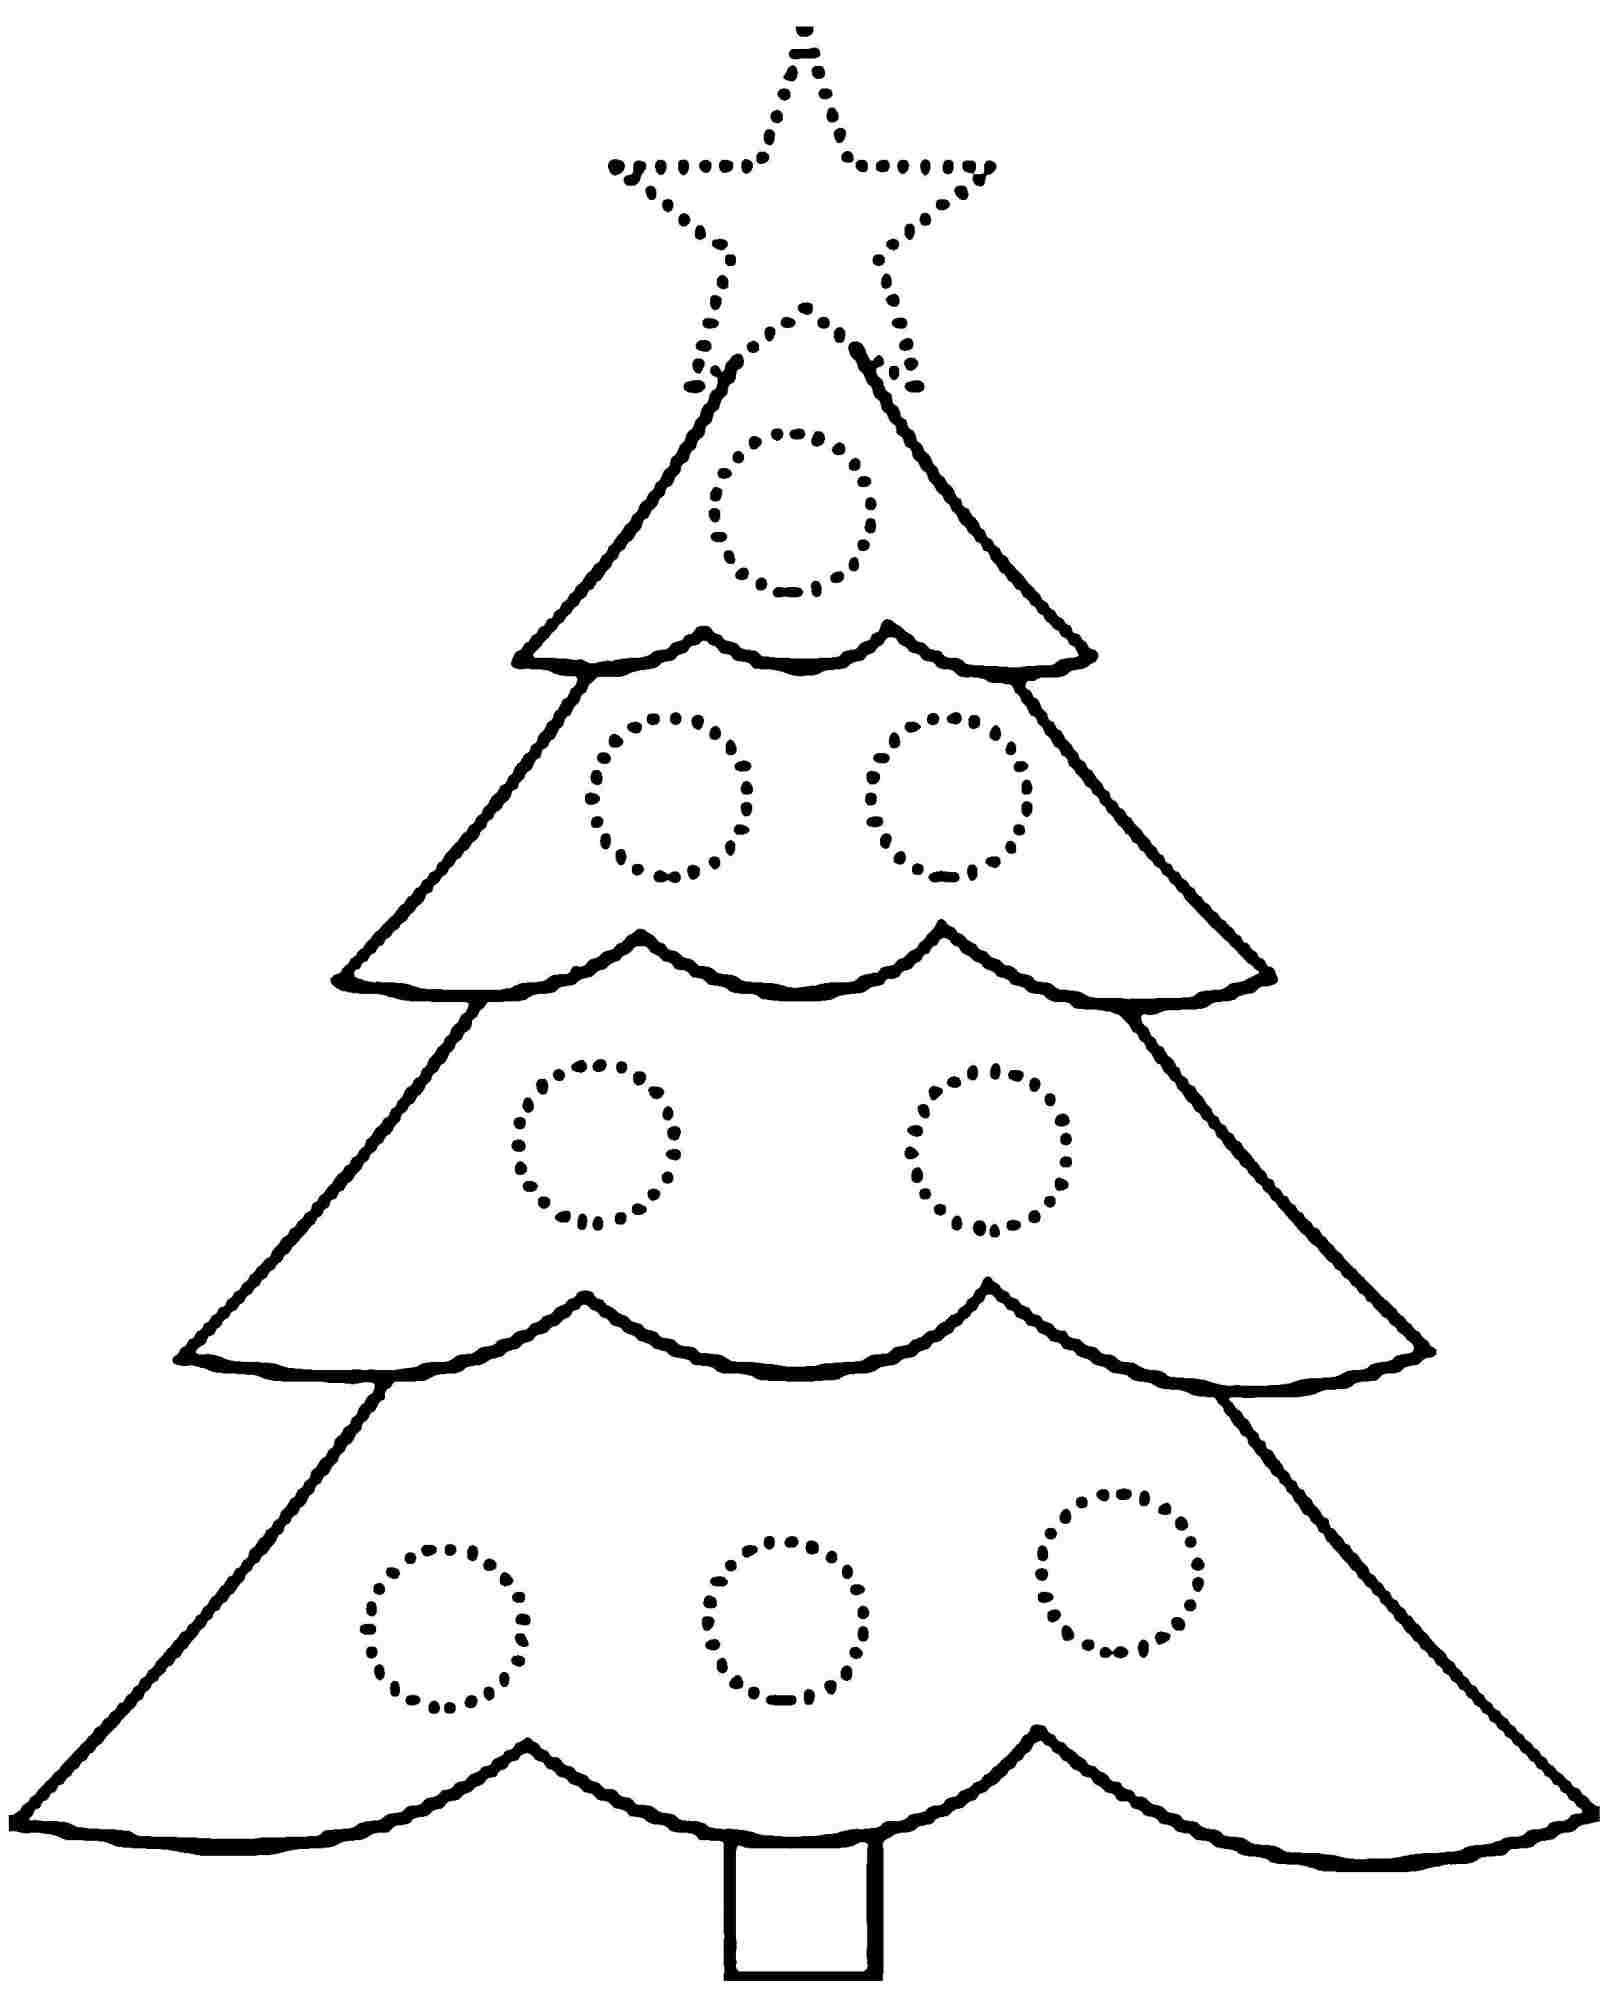 Printable Christmas Tree Coloring Pages In Of Trees In